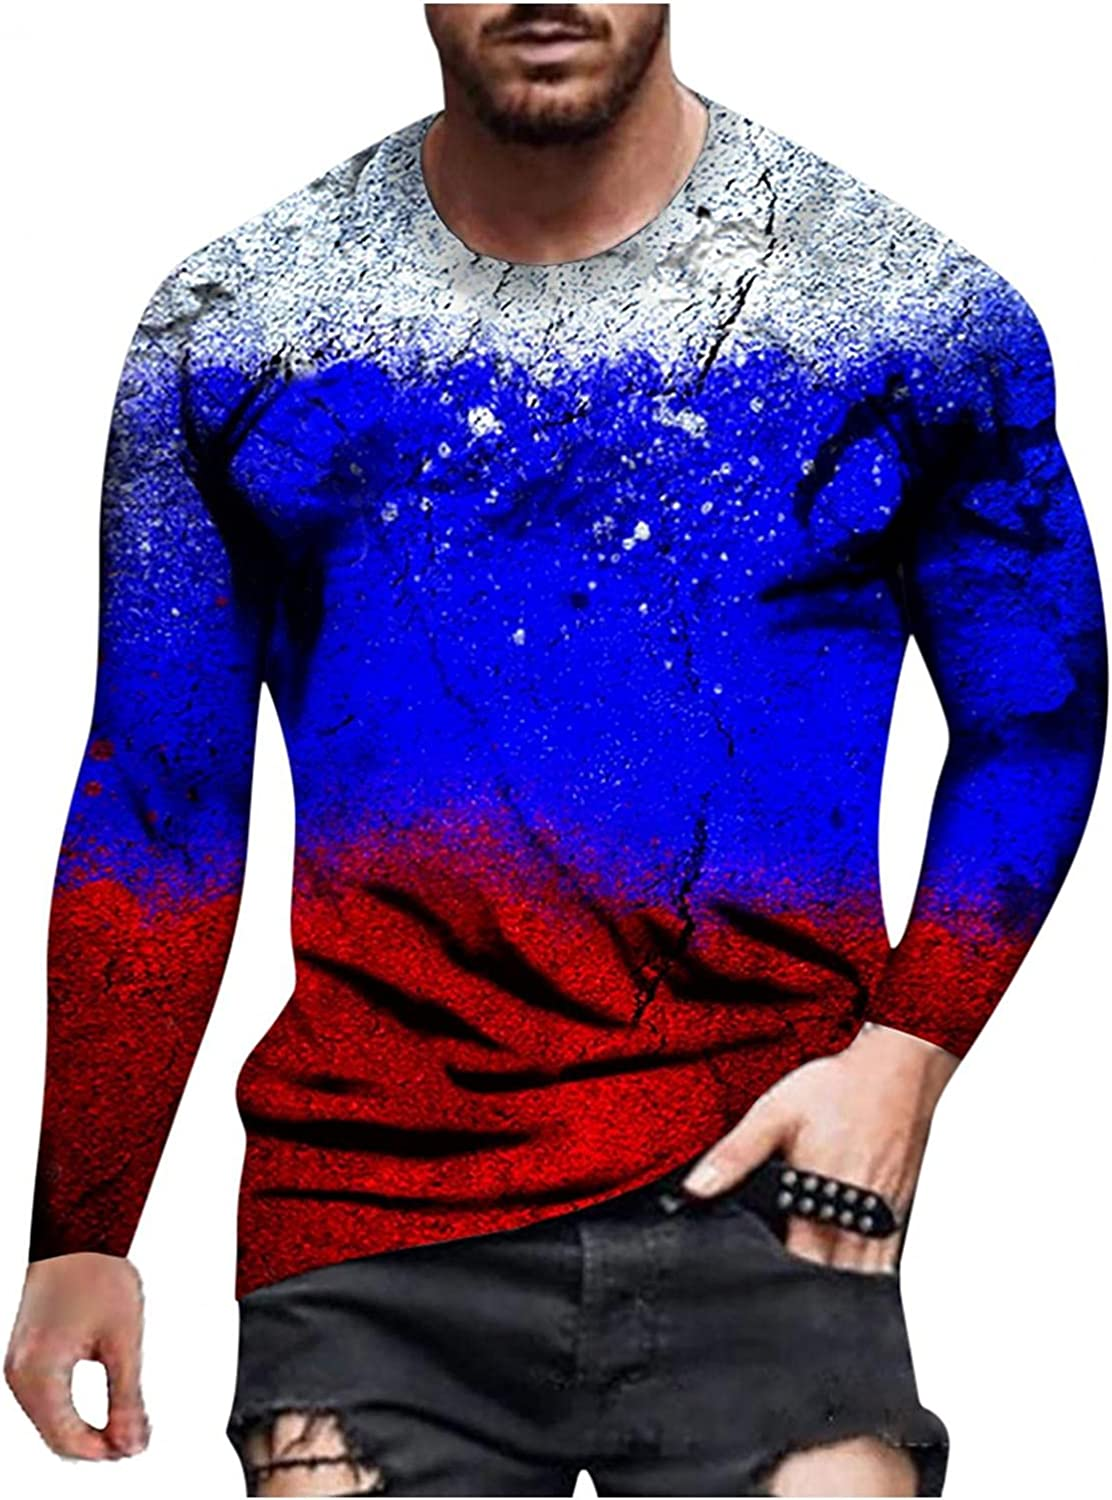 Mens Shirts Men's Autumn Winter Casual Printed Blue Red Round Neck Long Sleeve Tee Shirts for Men Polo Shirts for Men